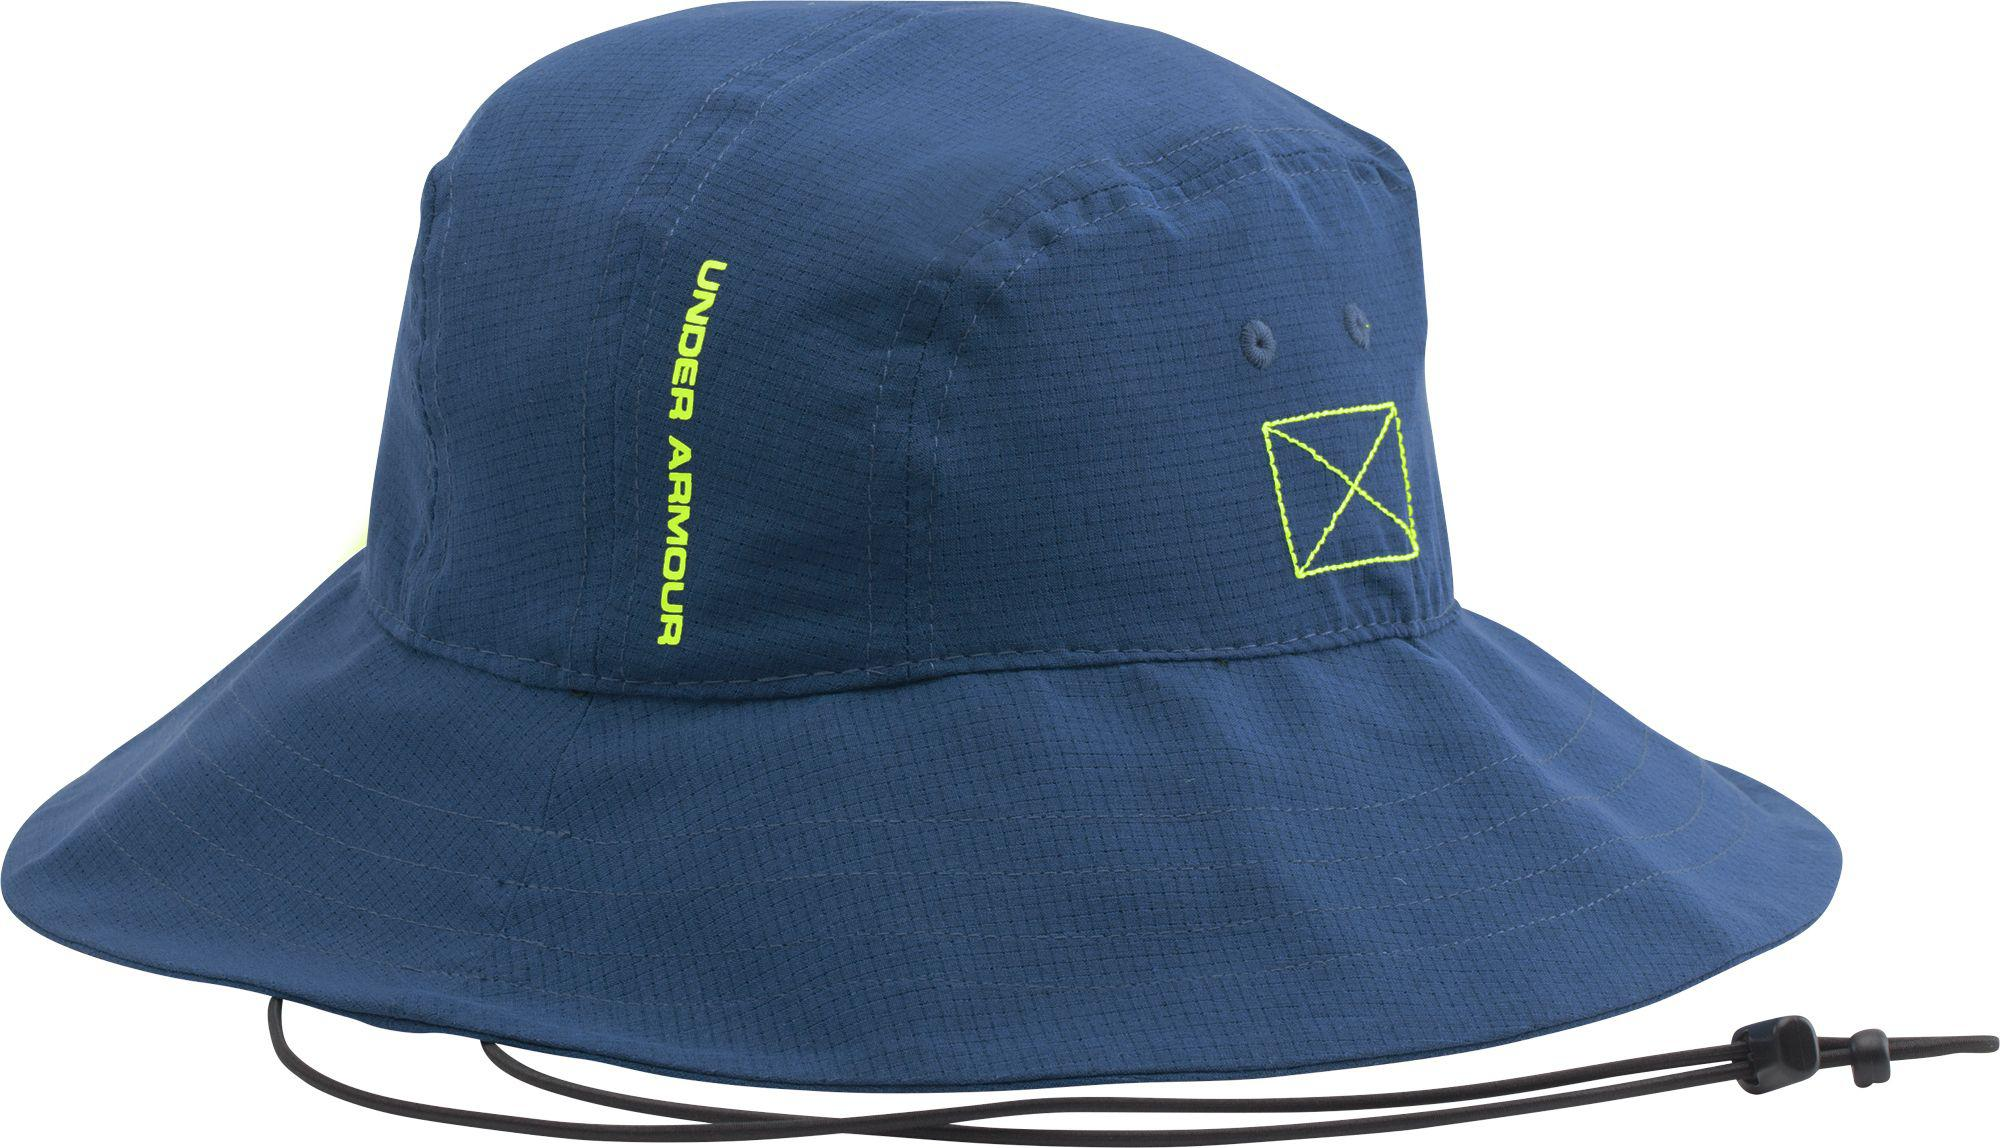 a9632007d40 Lyst - Under Armour Airvent Bucket Hat in Blue for Men